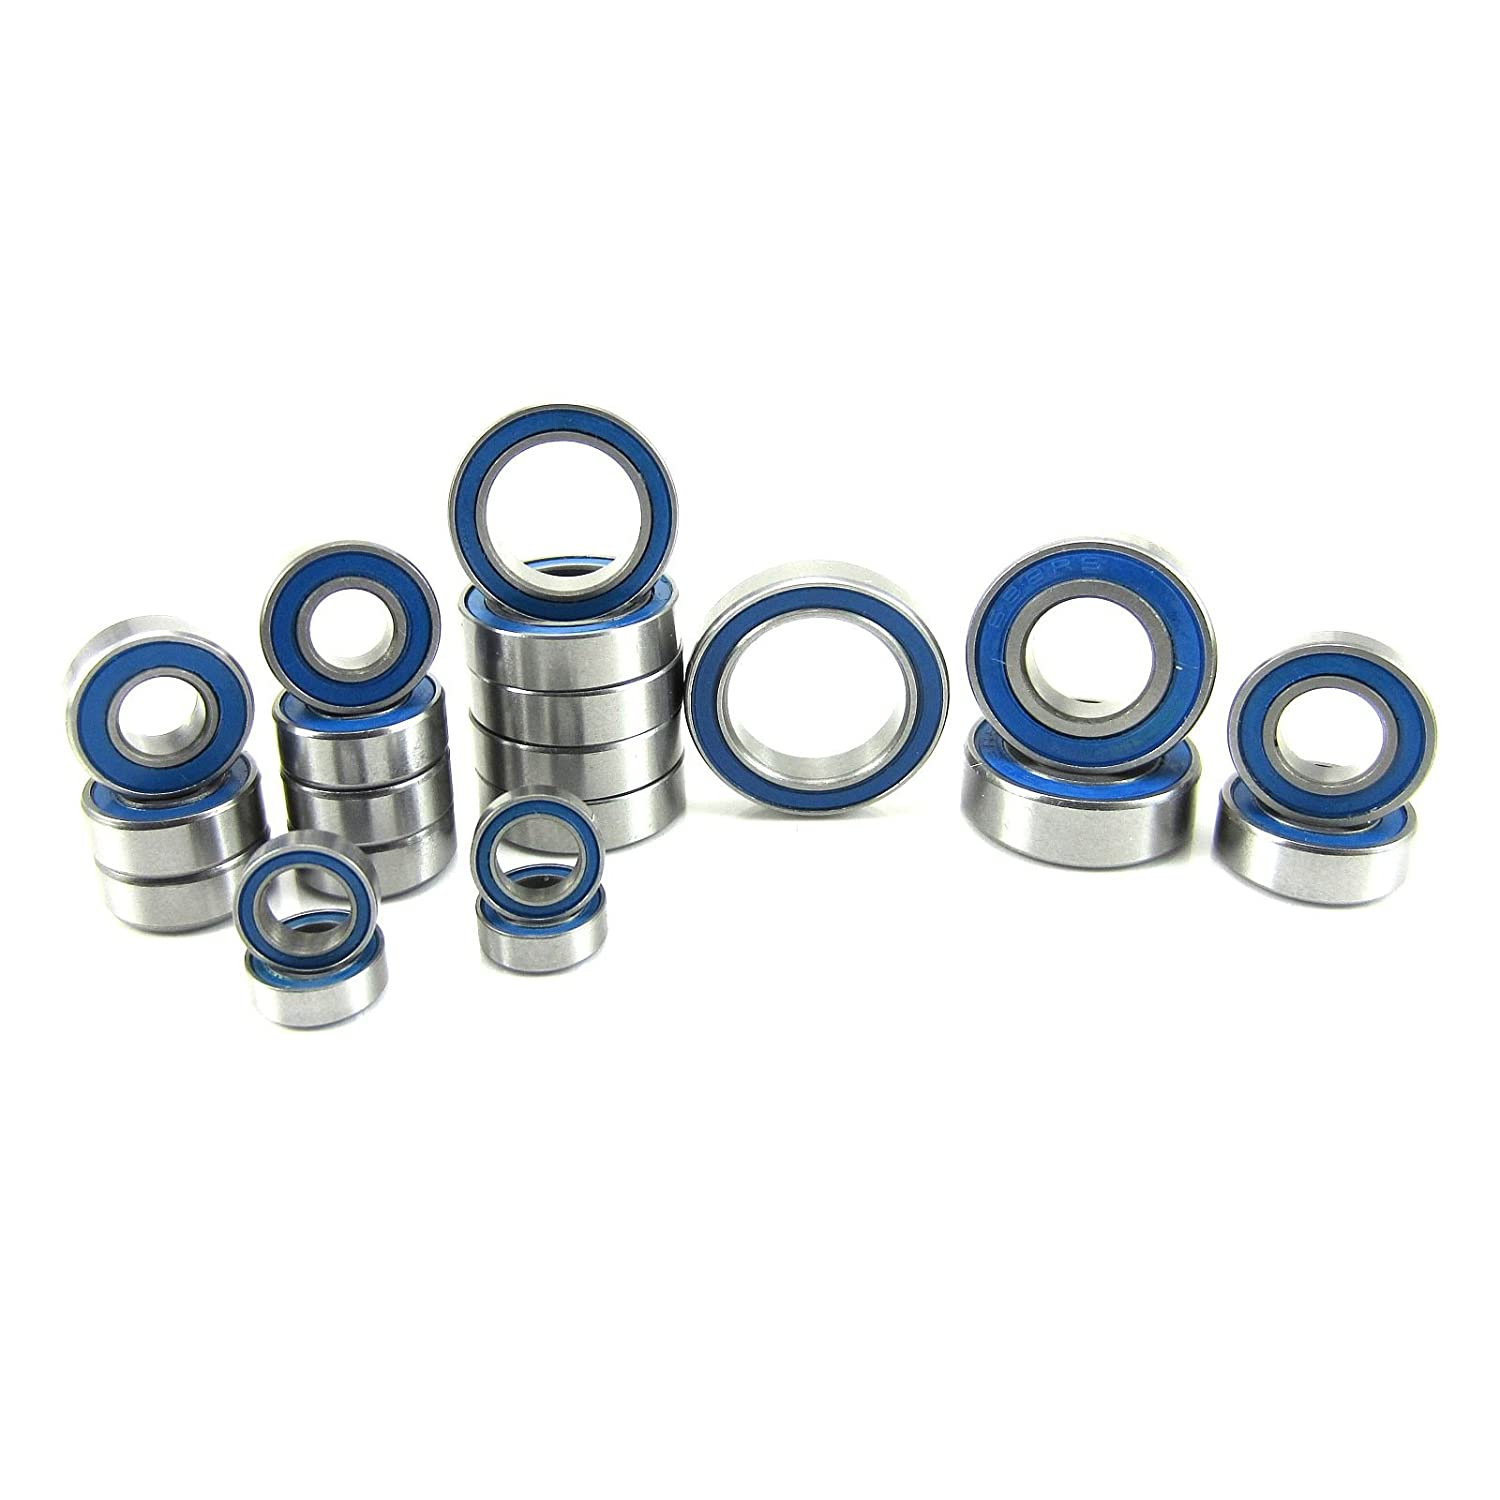 Traxxas Slash 4x4 VXL ABEC 3 Precision Ball Bearing Kit BU (21) Rubber Seals